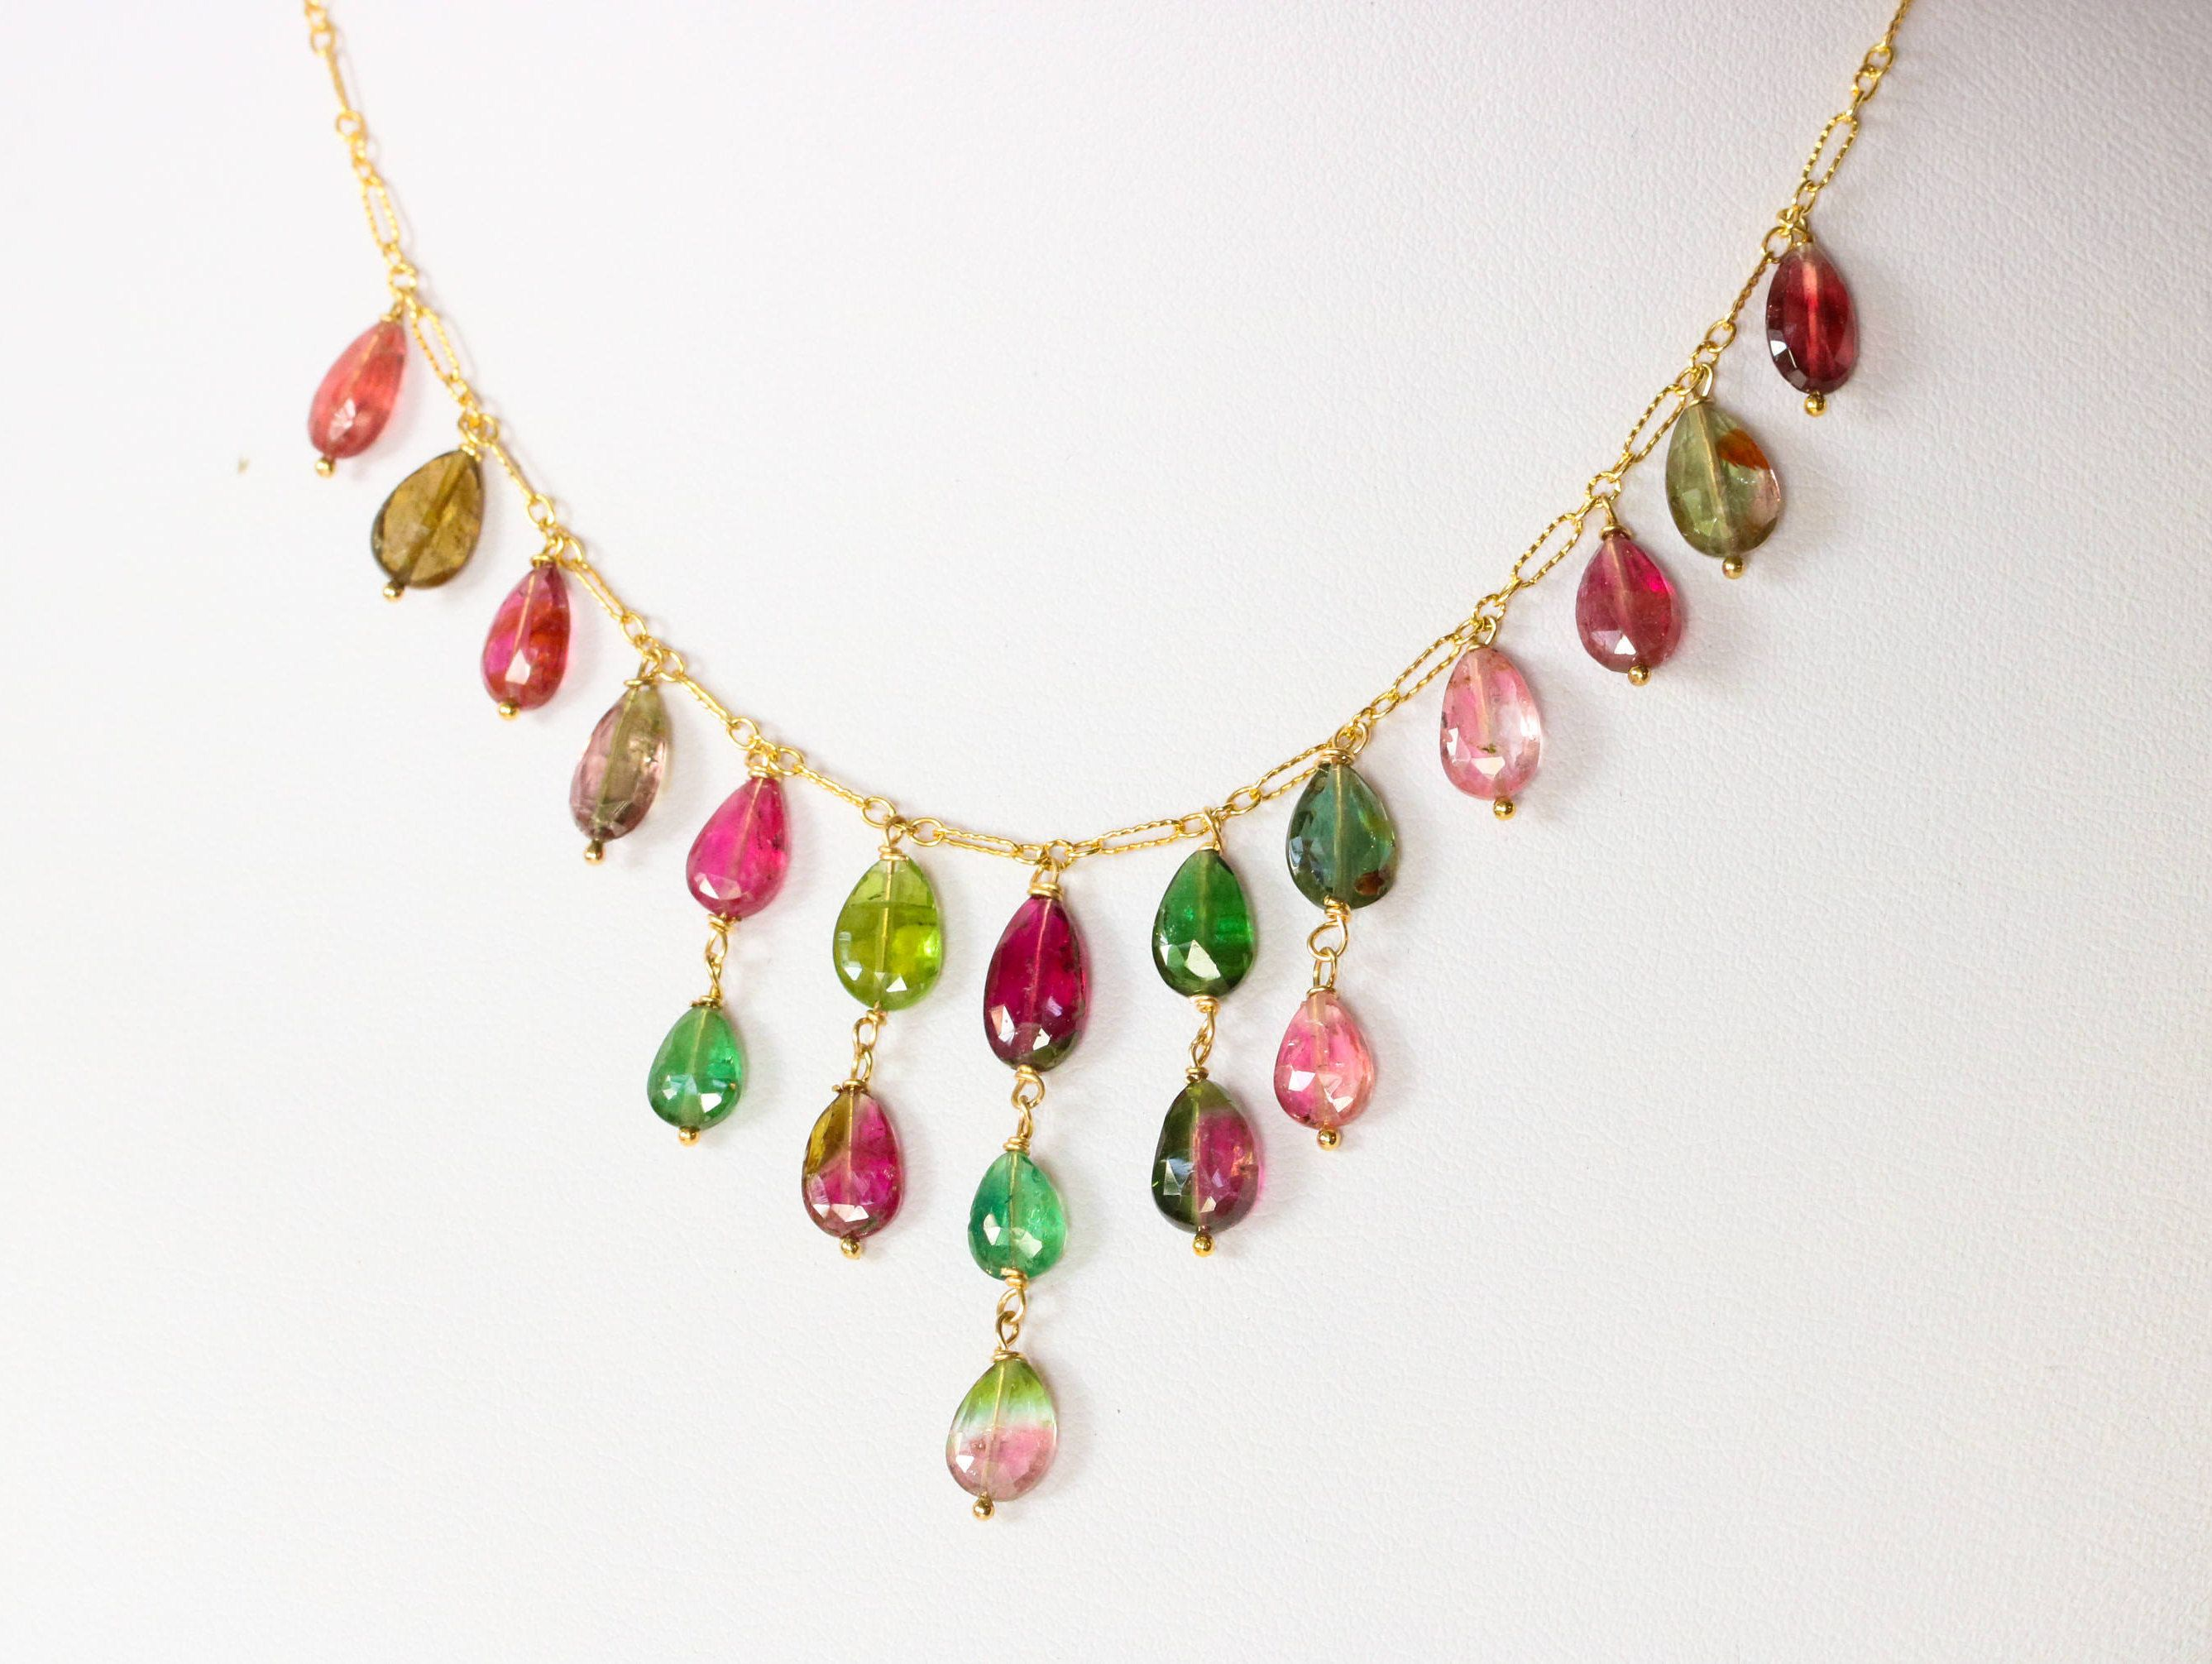 stone jewelry color and fashion white necklace tourmaline pendant pink diamond gold necklaces